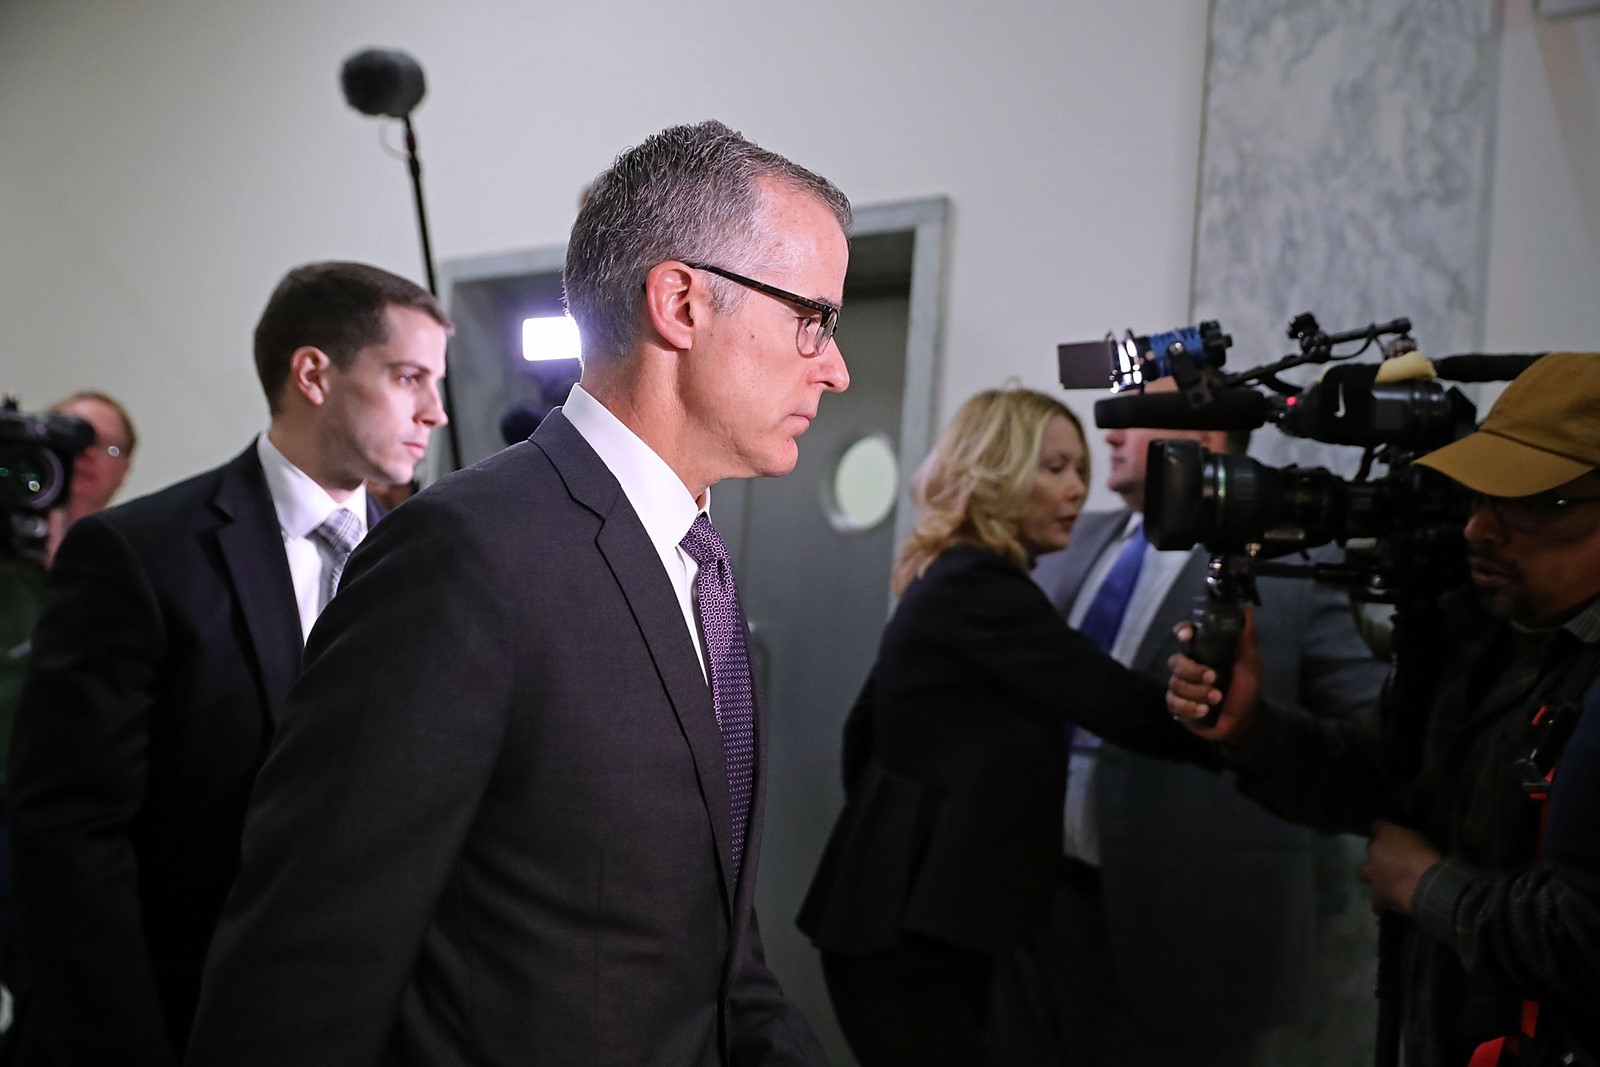 The firing of FBI Deputy Director Andrew McCabe could lead opposing political camps to dig in. — Photograph: Chip Somodevilla/Getty Images.